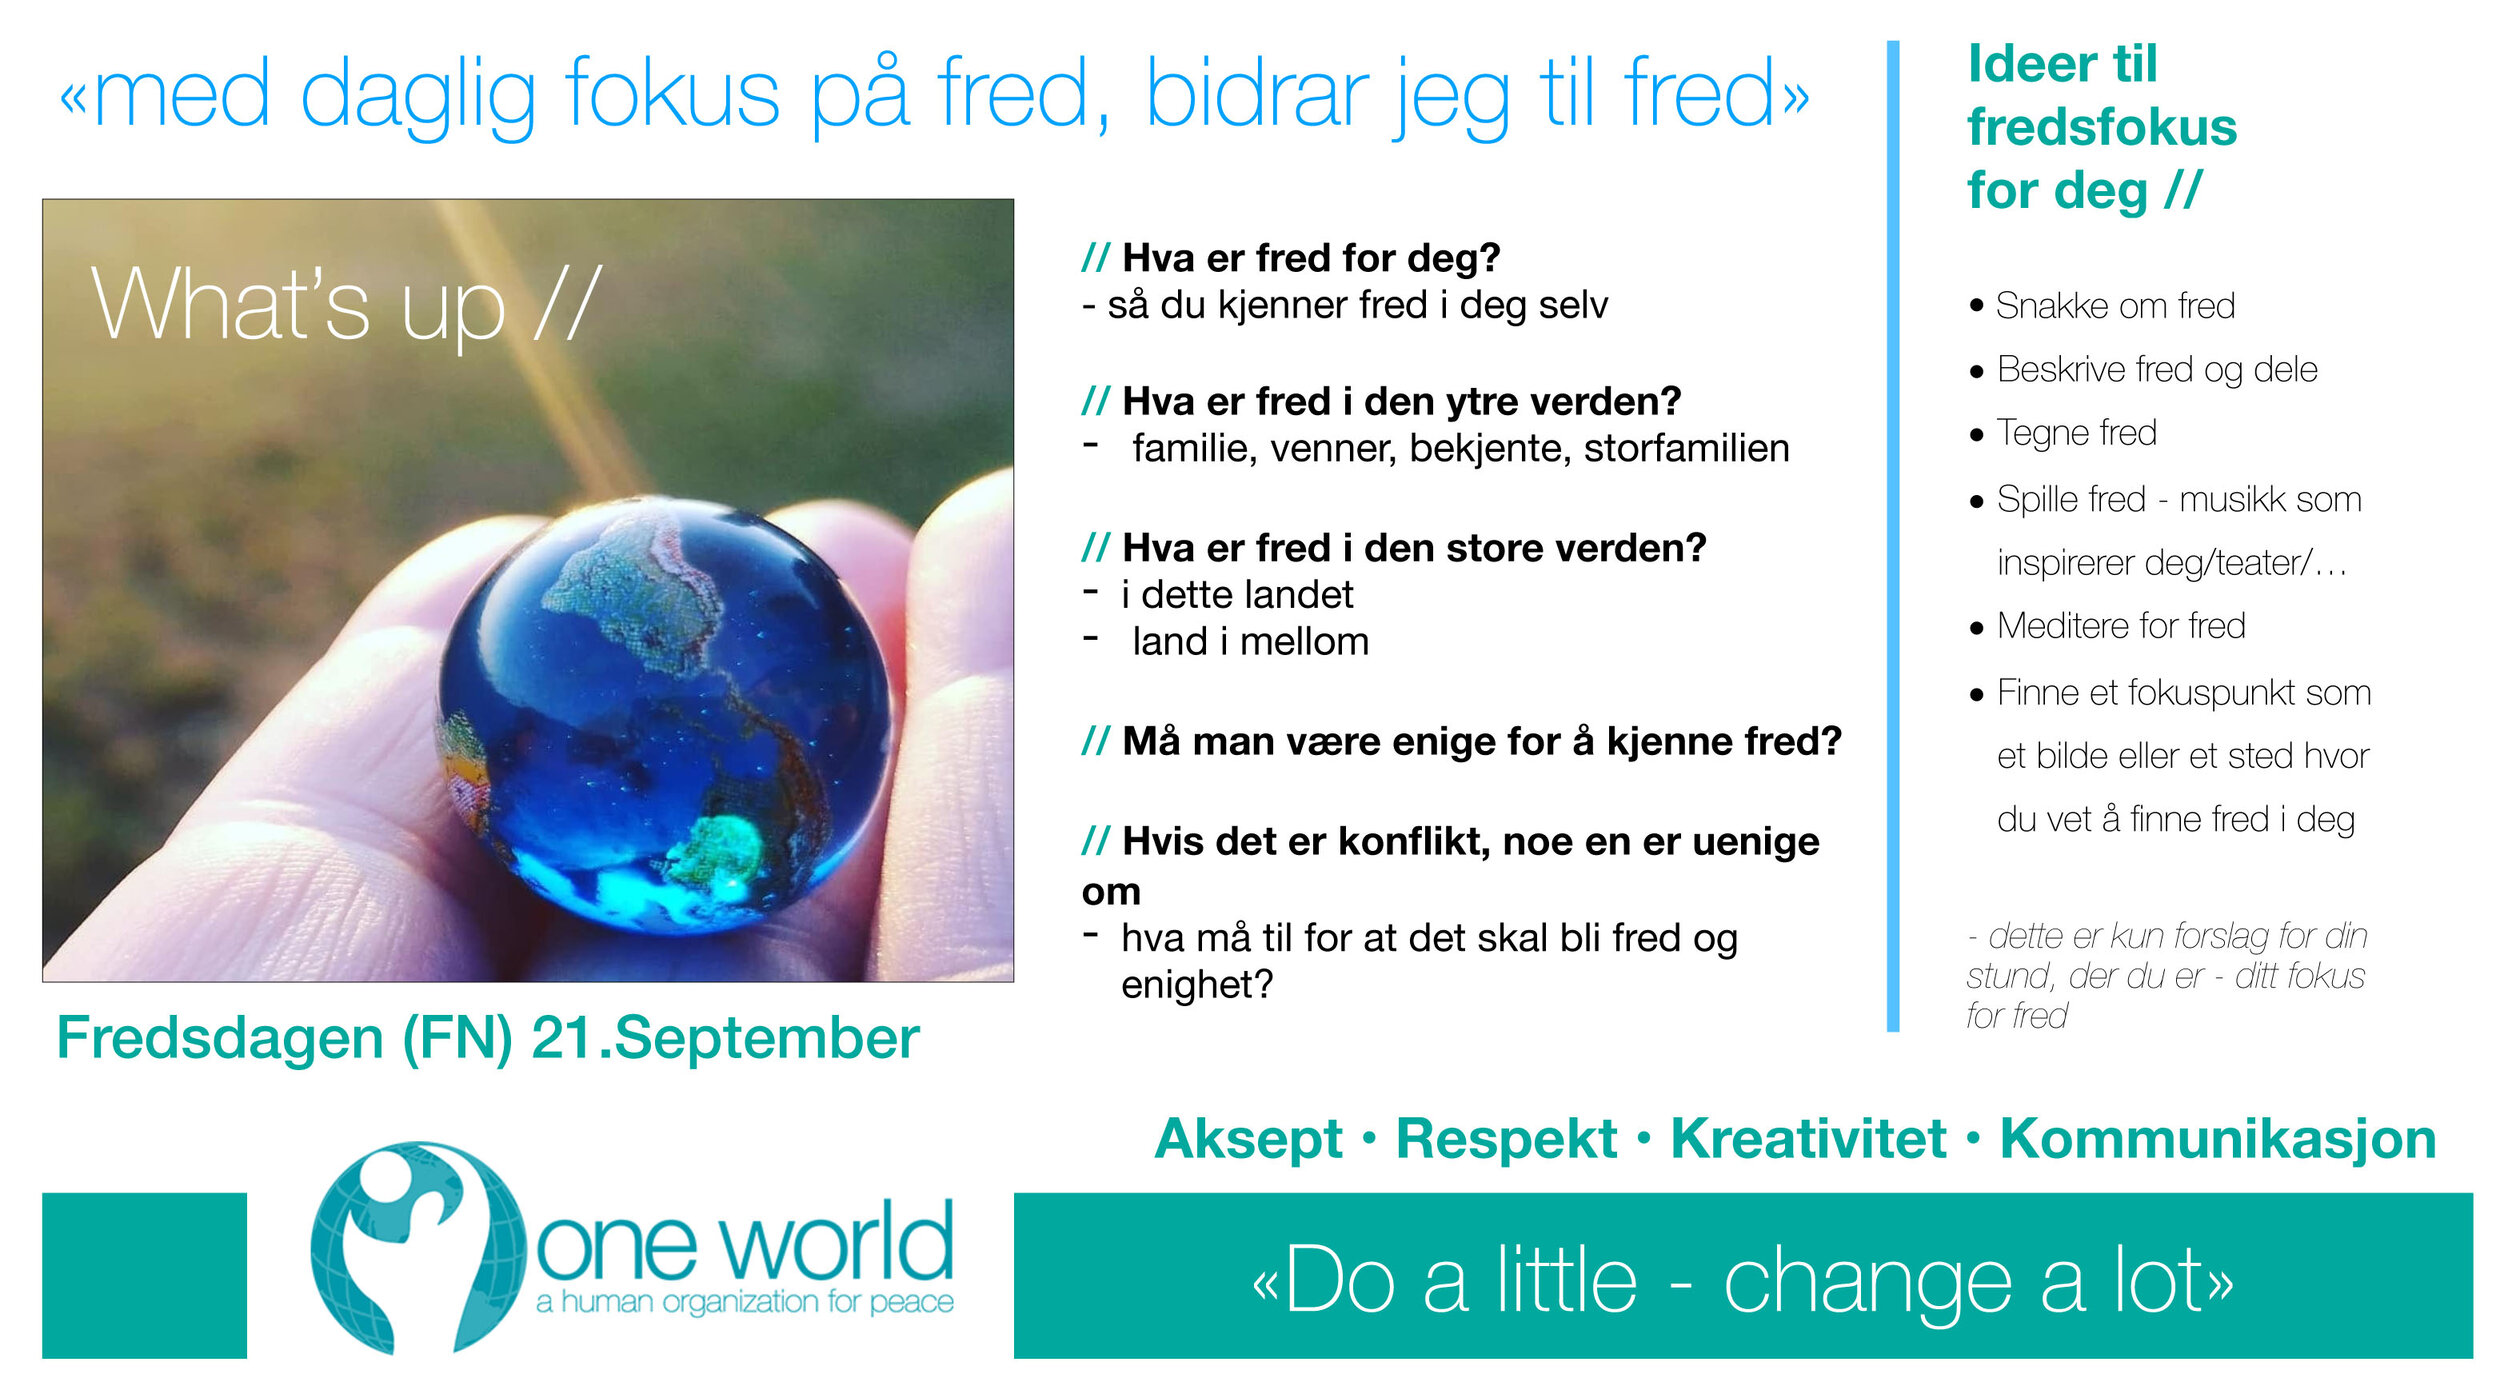 fredsdagen 21 september 2019 one world.jpg